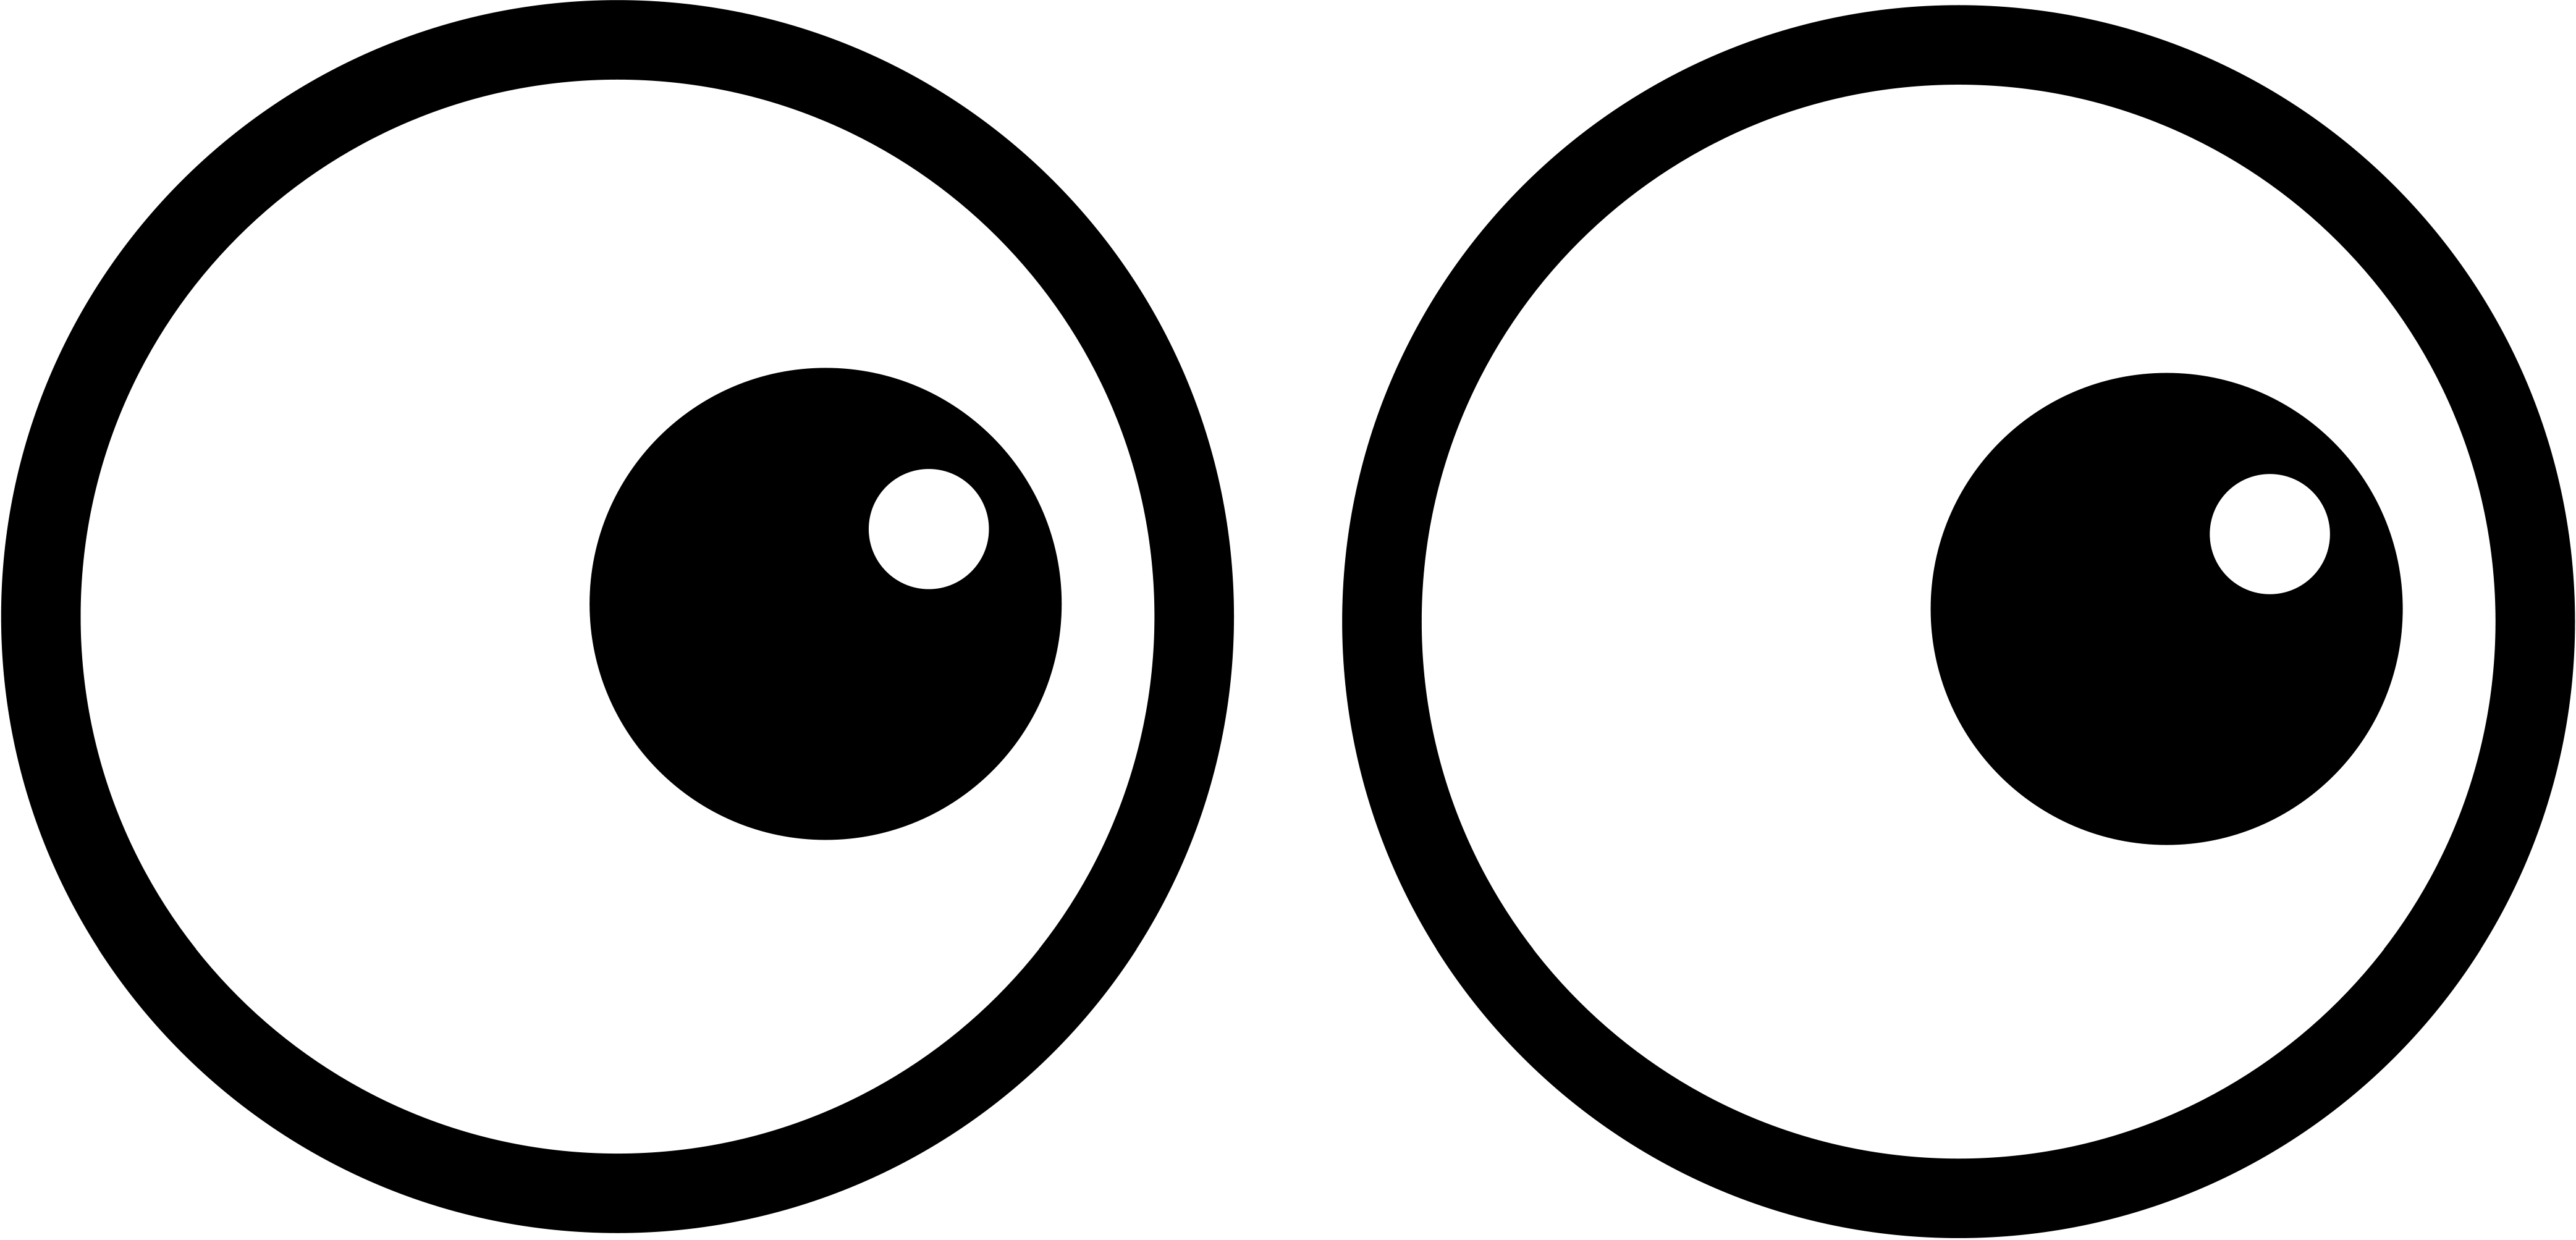 Eyes clipart black and white animated. Free cartoon cliparts download